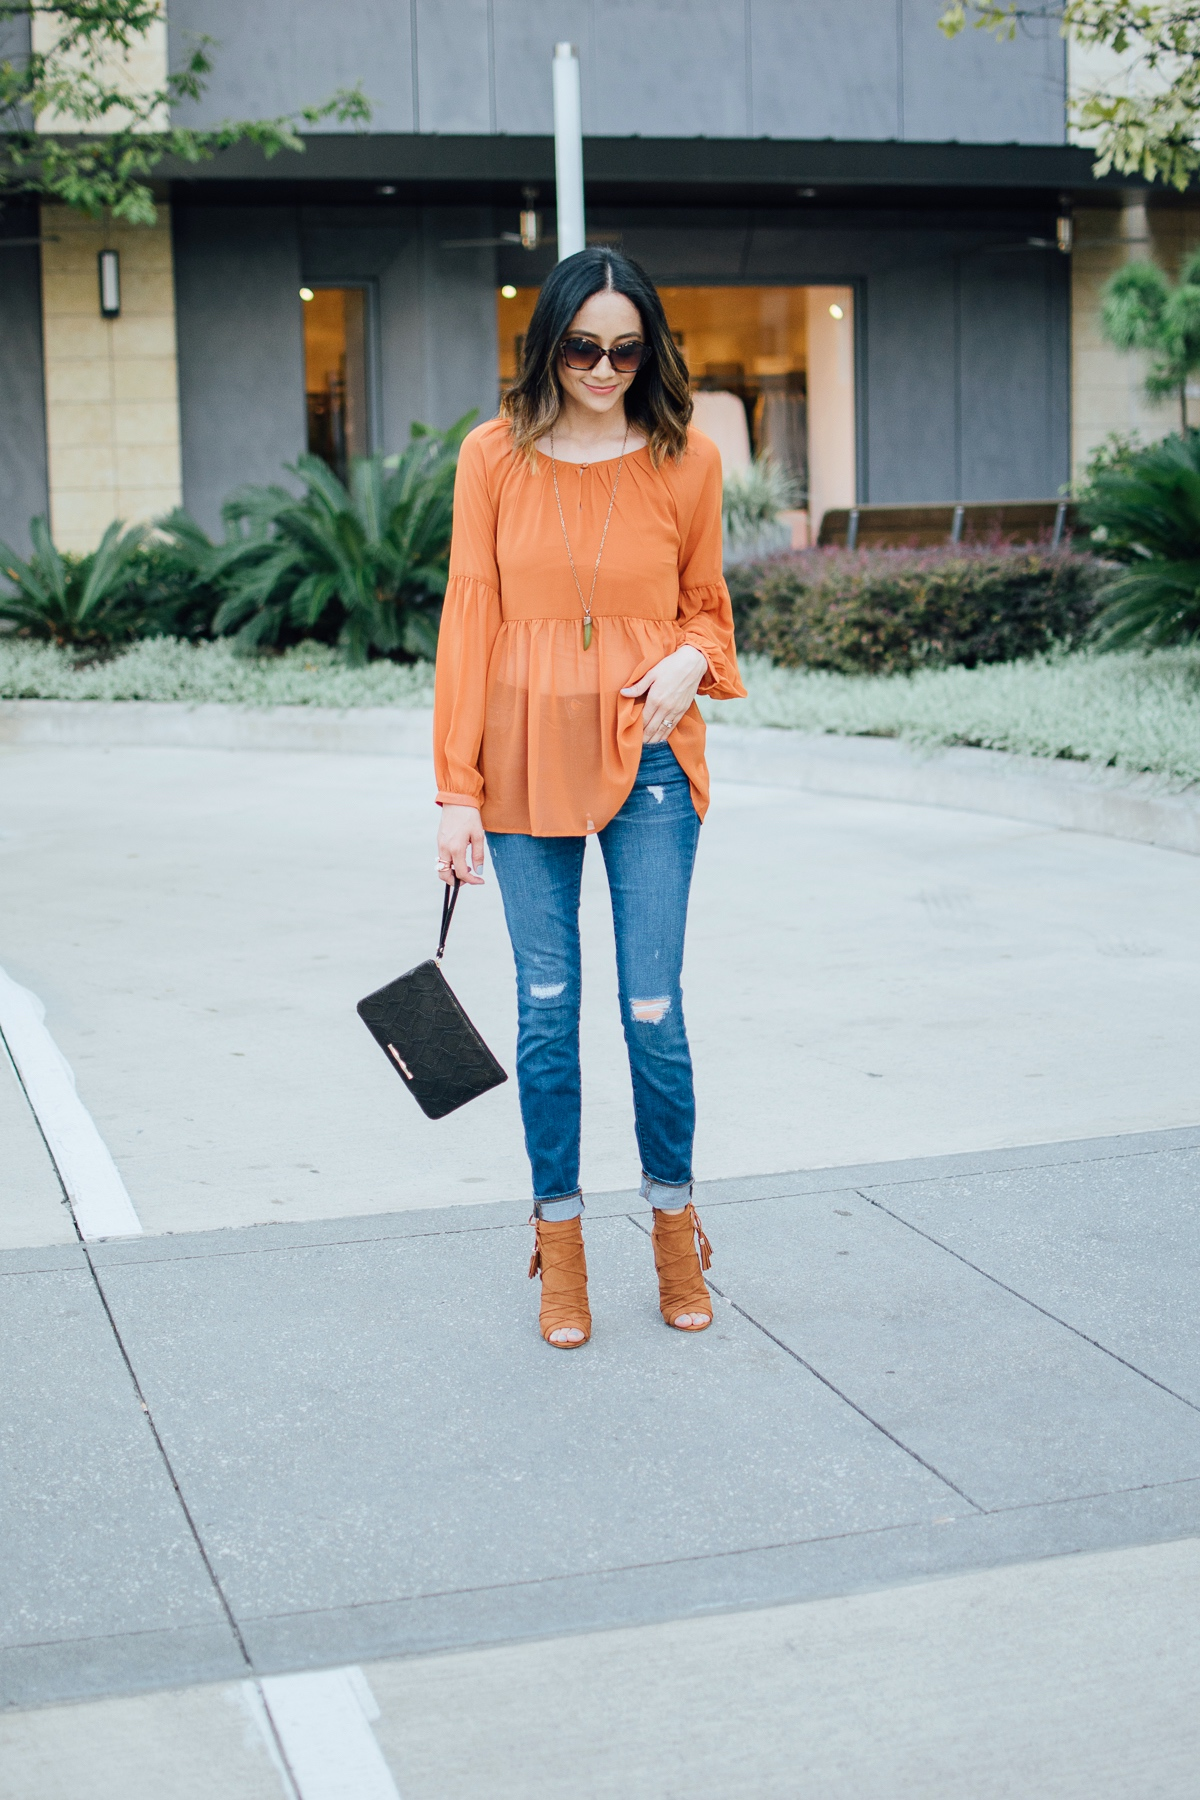 Lilly Beltran of Daily Craving in a fall look wearing an orange top and orange lace up sandals